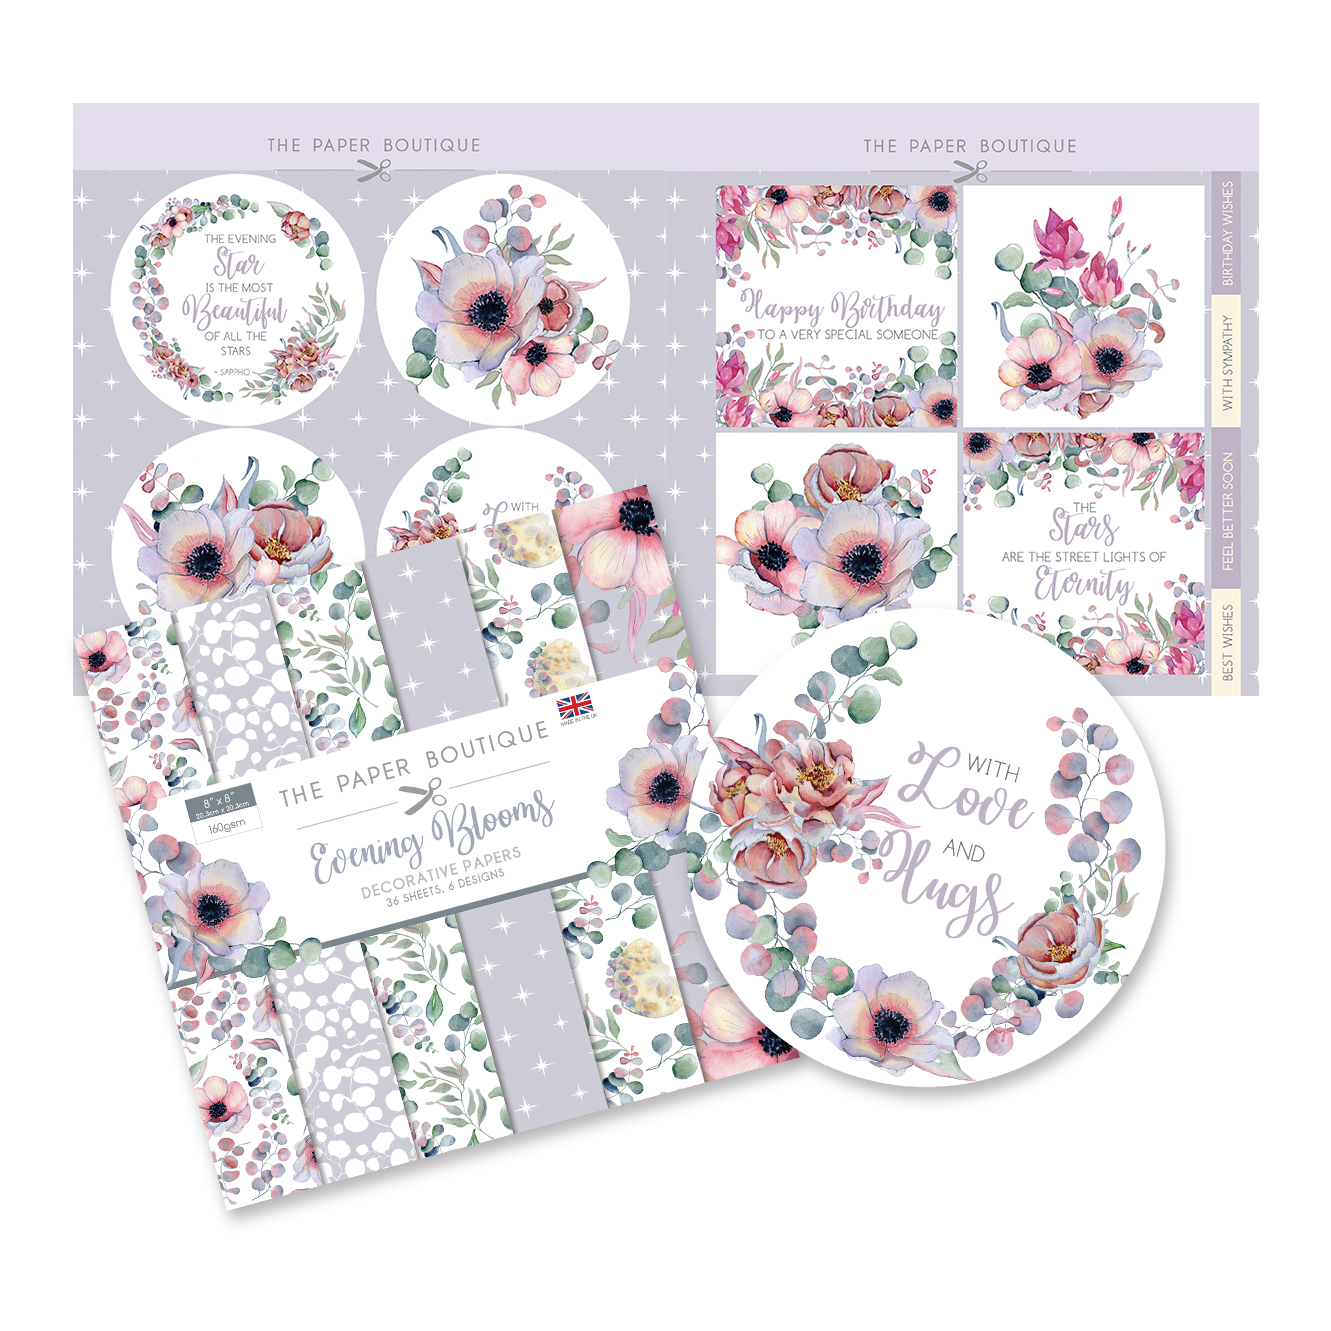 The Paper Boutique Evening Blooms 8″ x 8″ Paper Kit